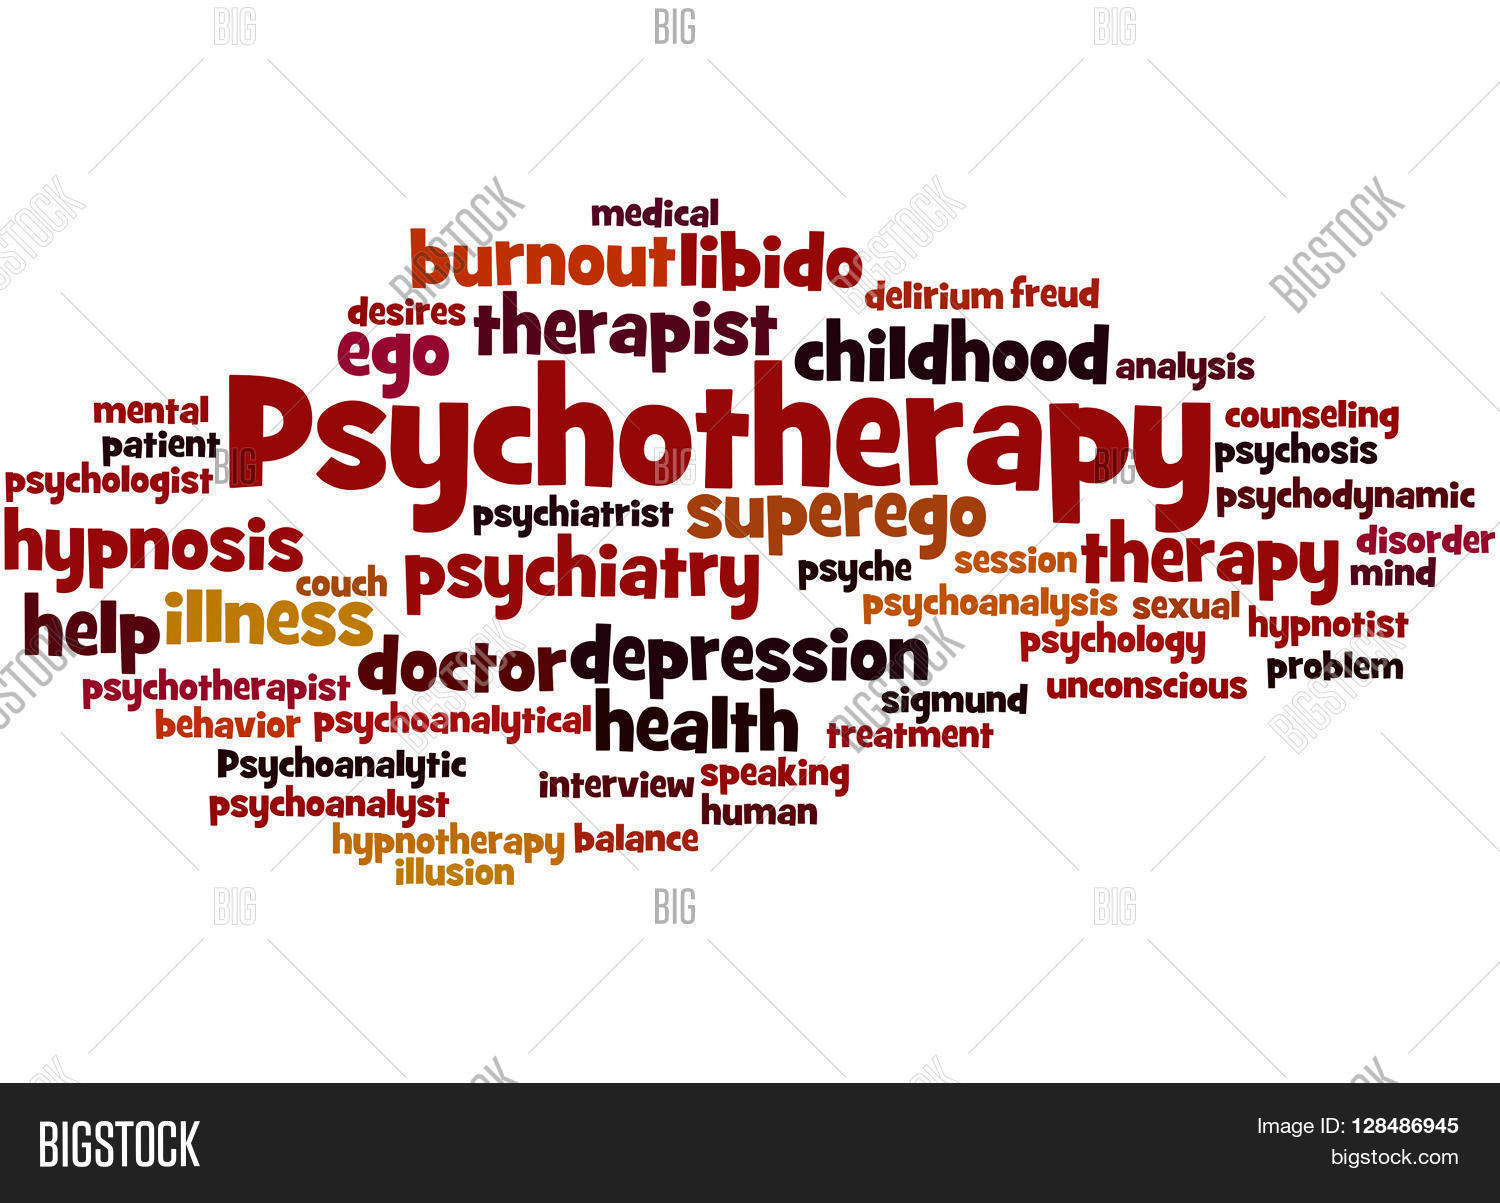 an overview of the freuds psychoanalyses and the concept of the psychoanalytic personality explorati The enduring significance of psychoanalytic the concepts of ambivalence and conflict freud posited for an excellent and more complete overview.